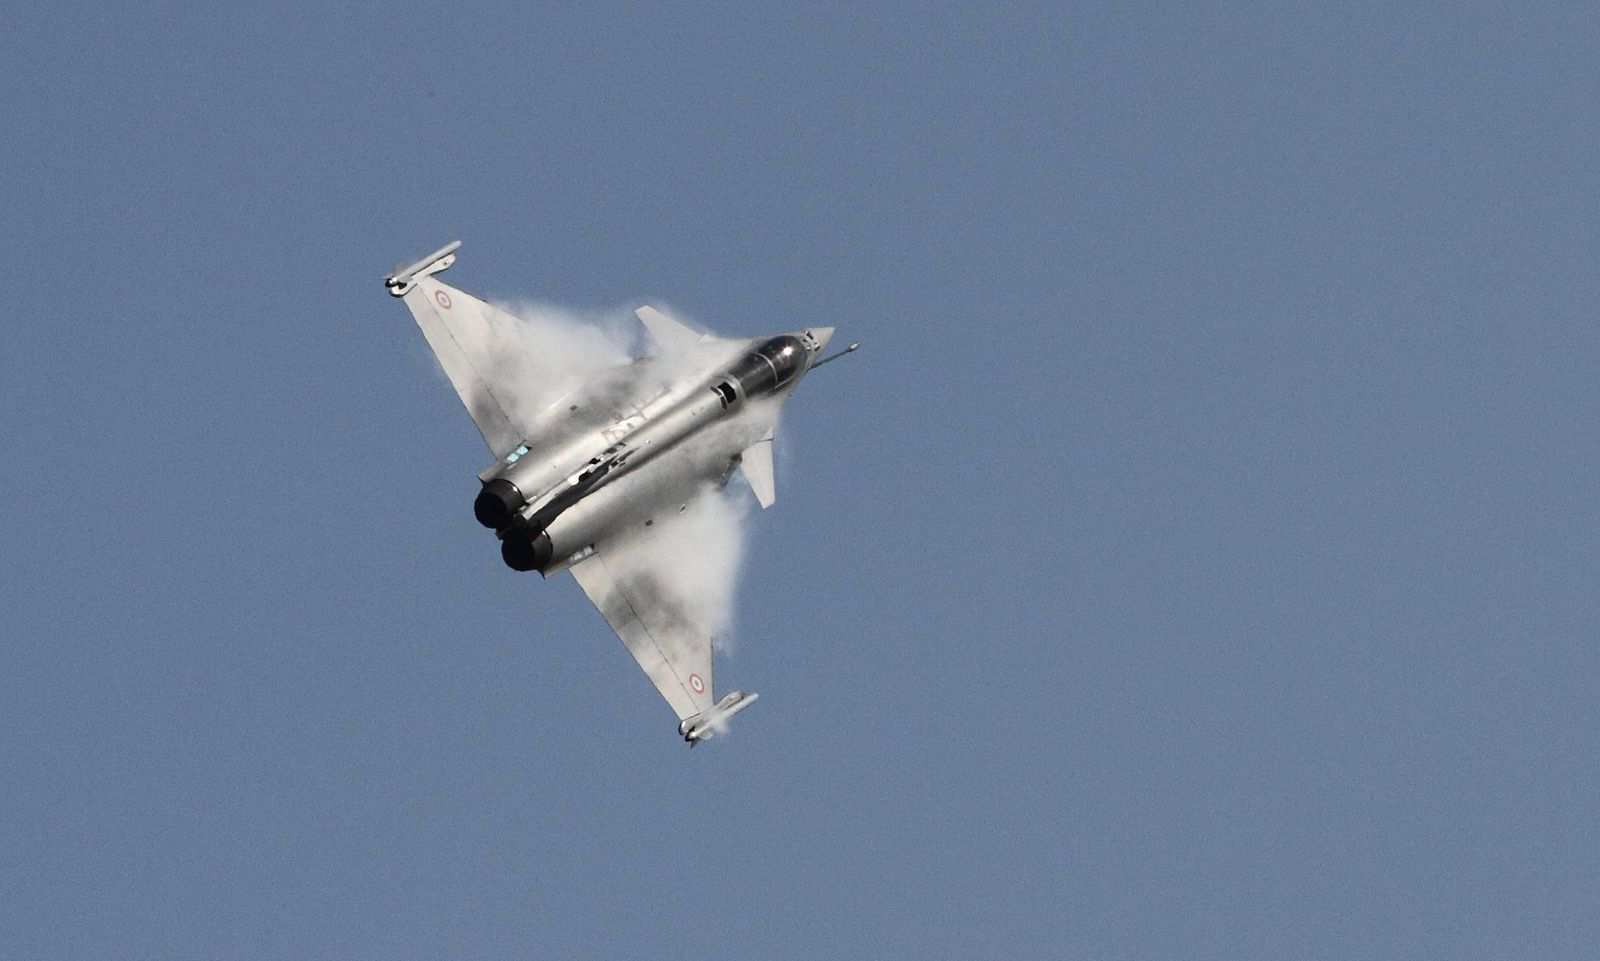 Rafale Solo Display meeting de France Valence Chabeuil le 7 juillet 2013